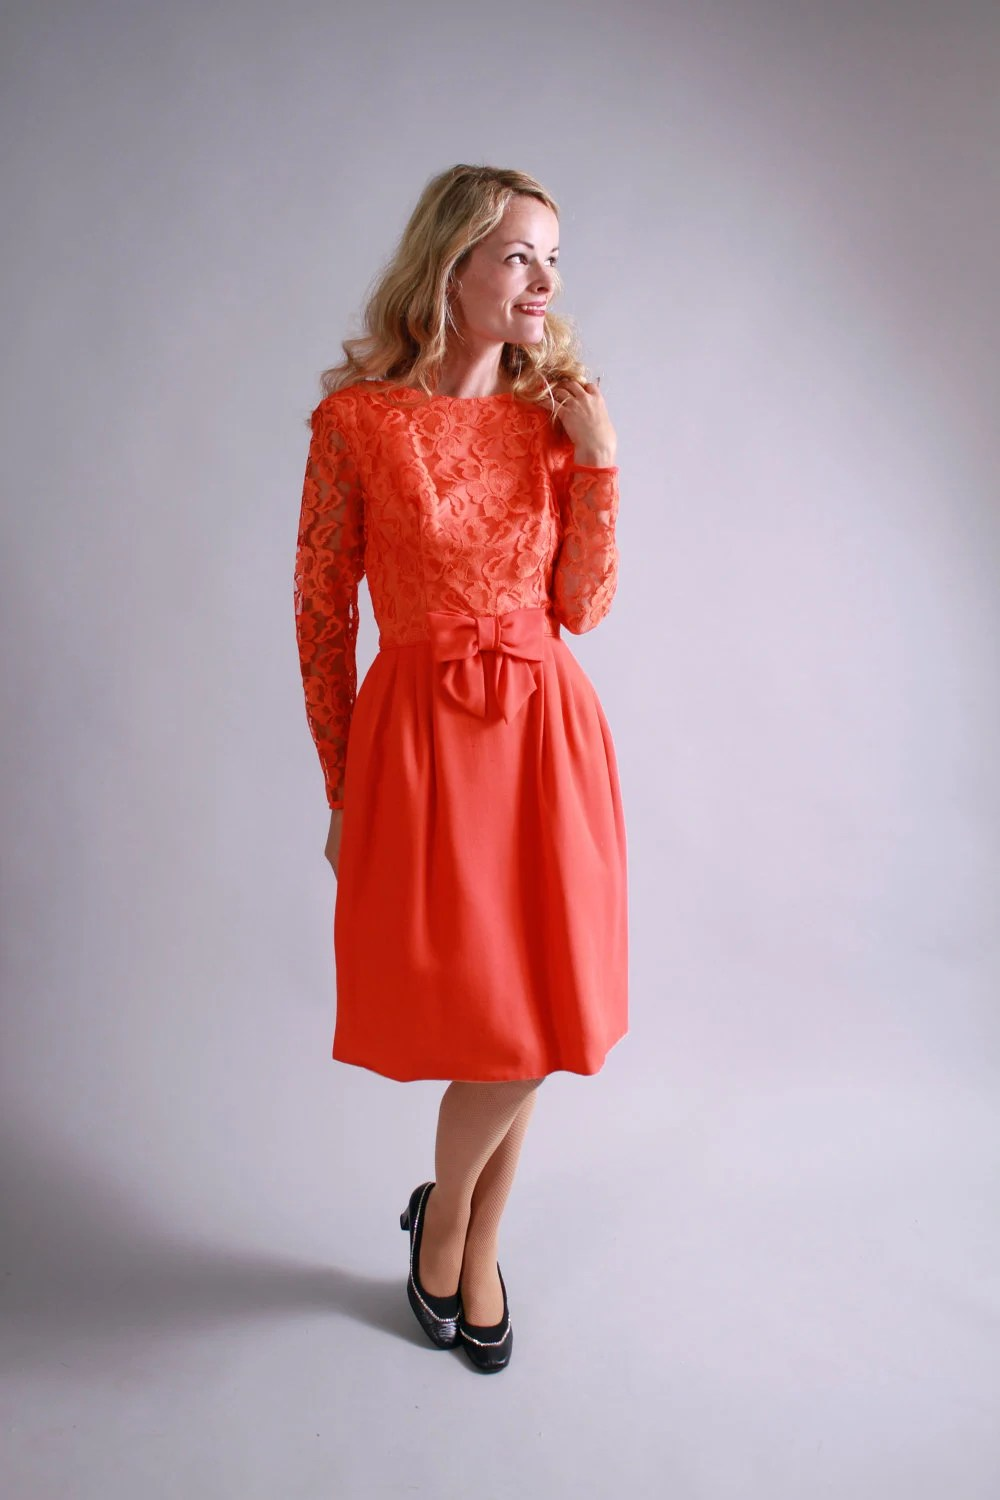 1960s dress / 60s orange lace party dress / fall autumn vintage halloween fashion